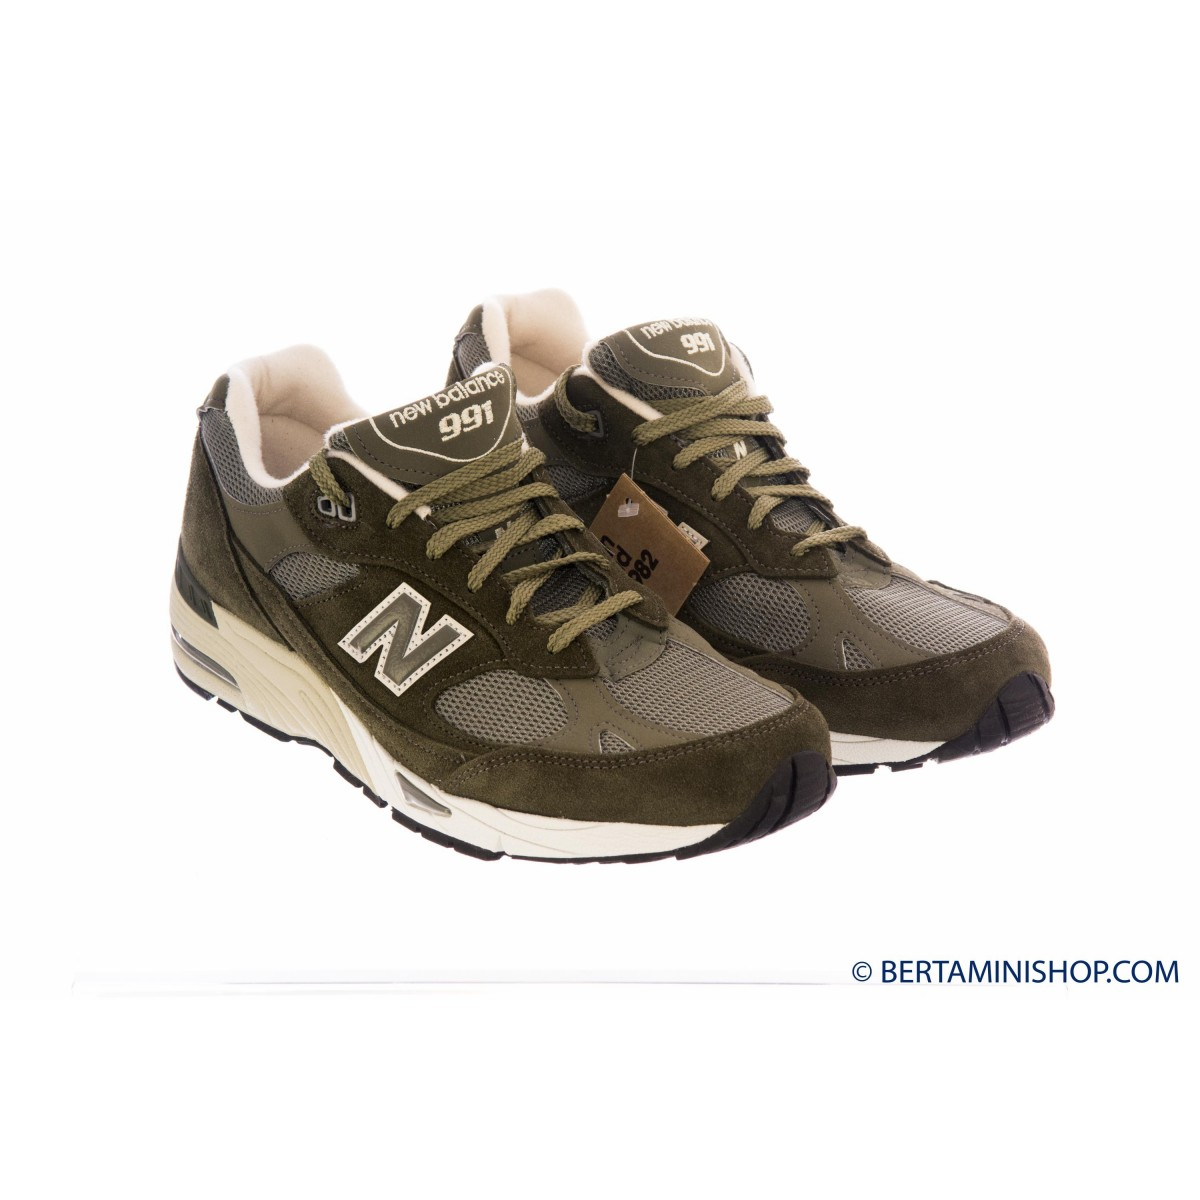 Schuhen New Balance Manner - M991 Made In Uk Originals